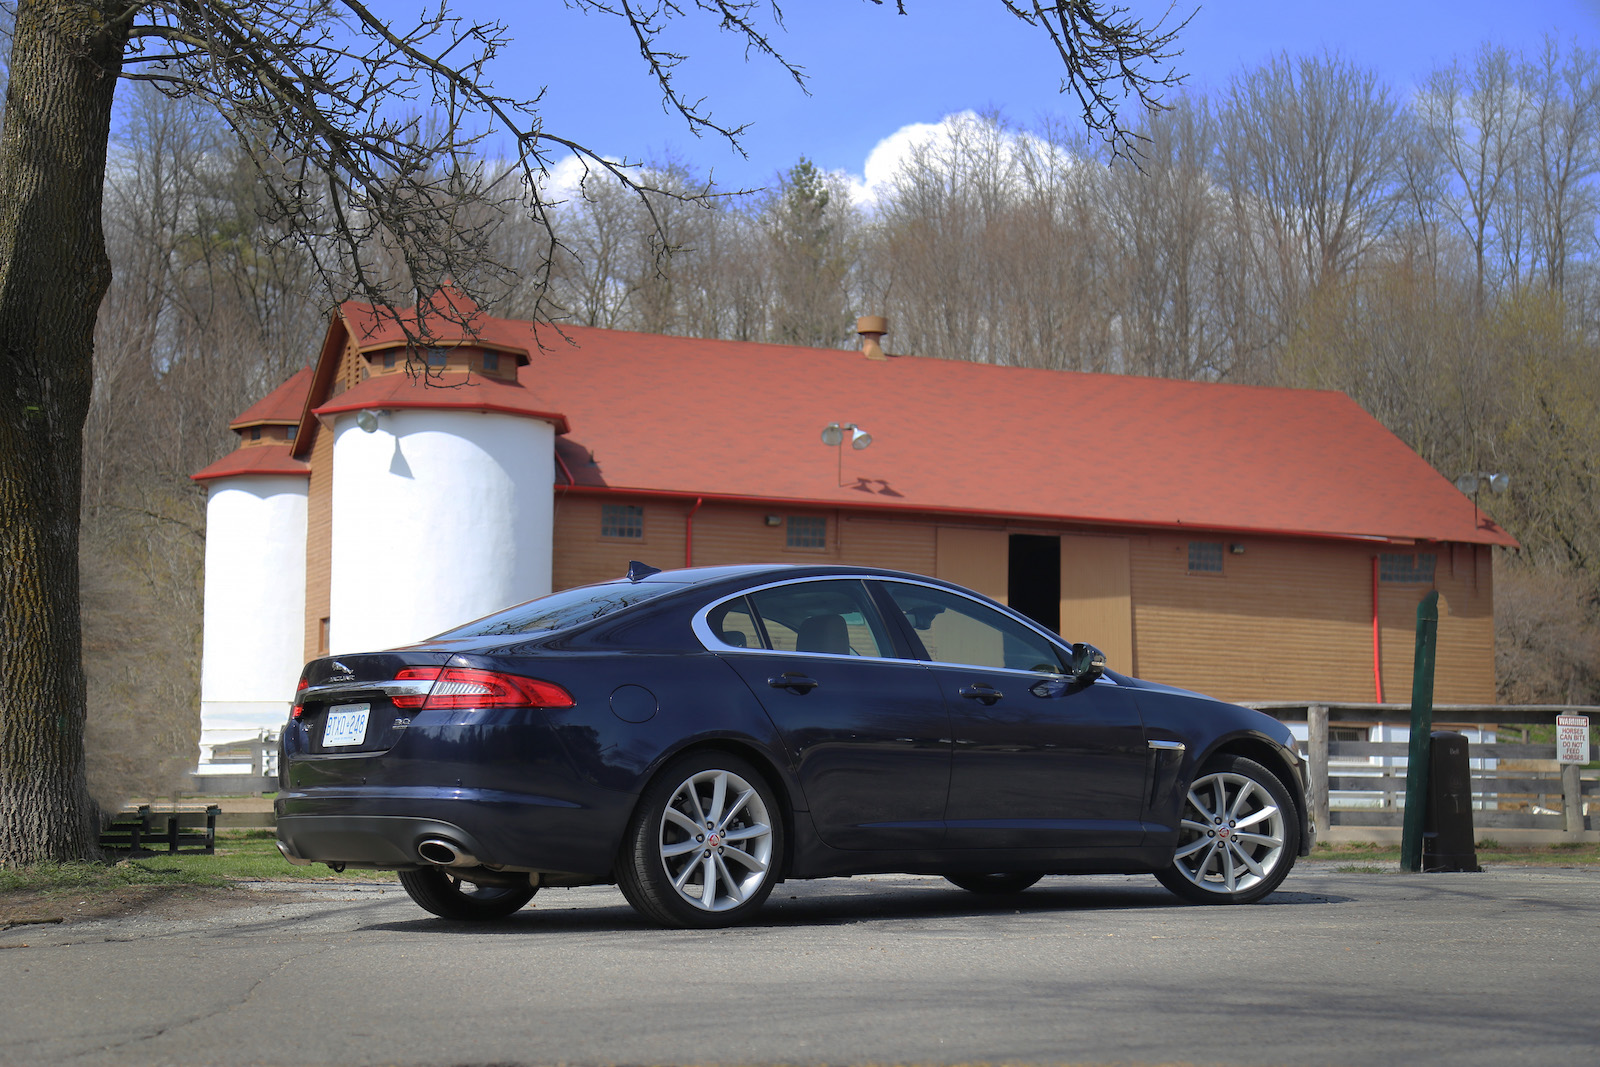 auto premium approach sedan the review takes africametro turbo shop xf with evolutionary jaguar